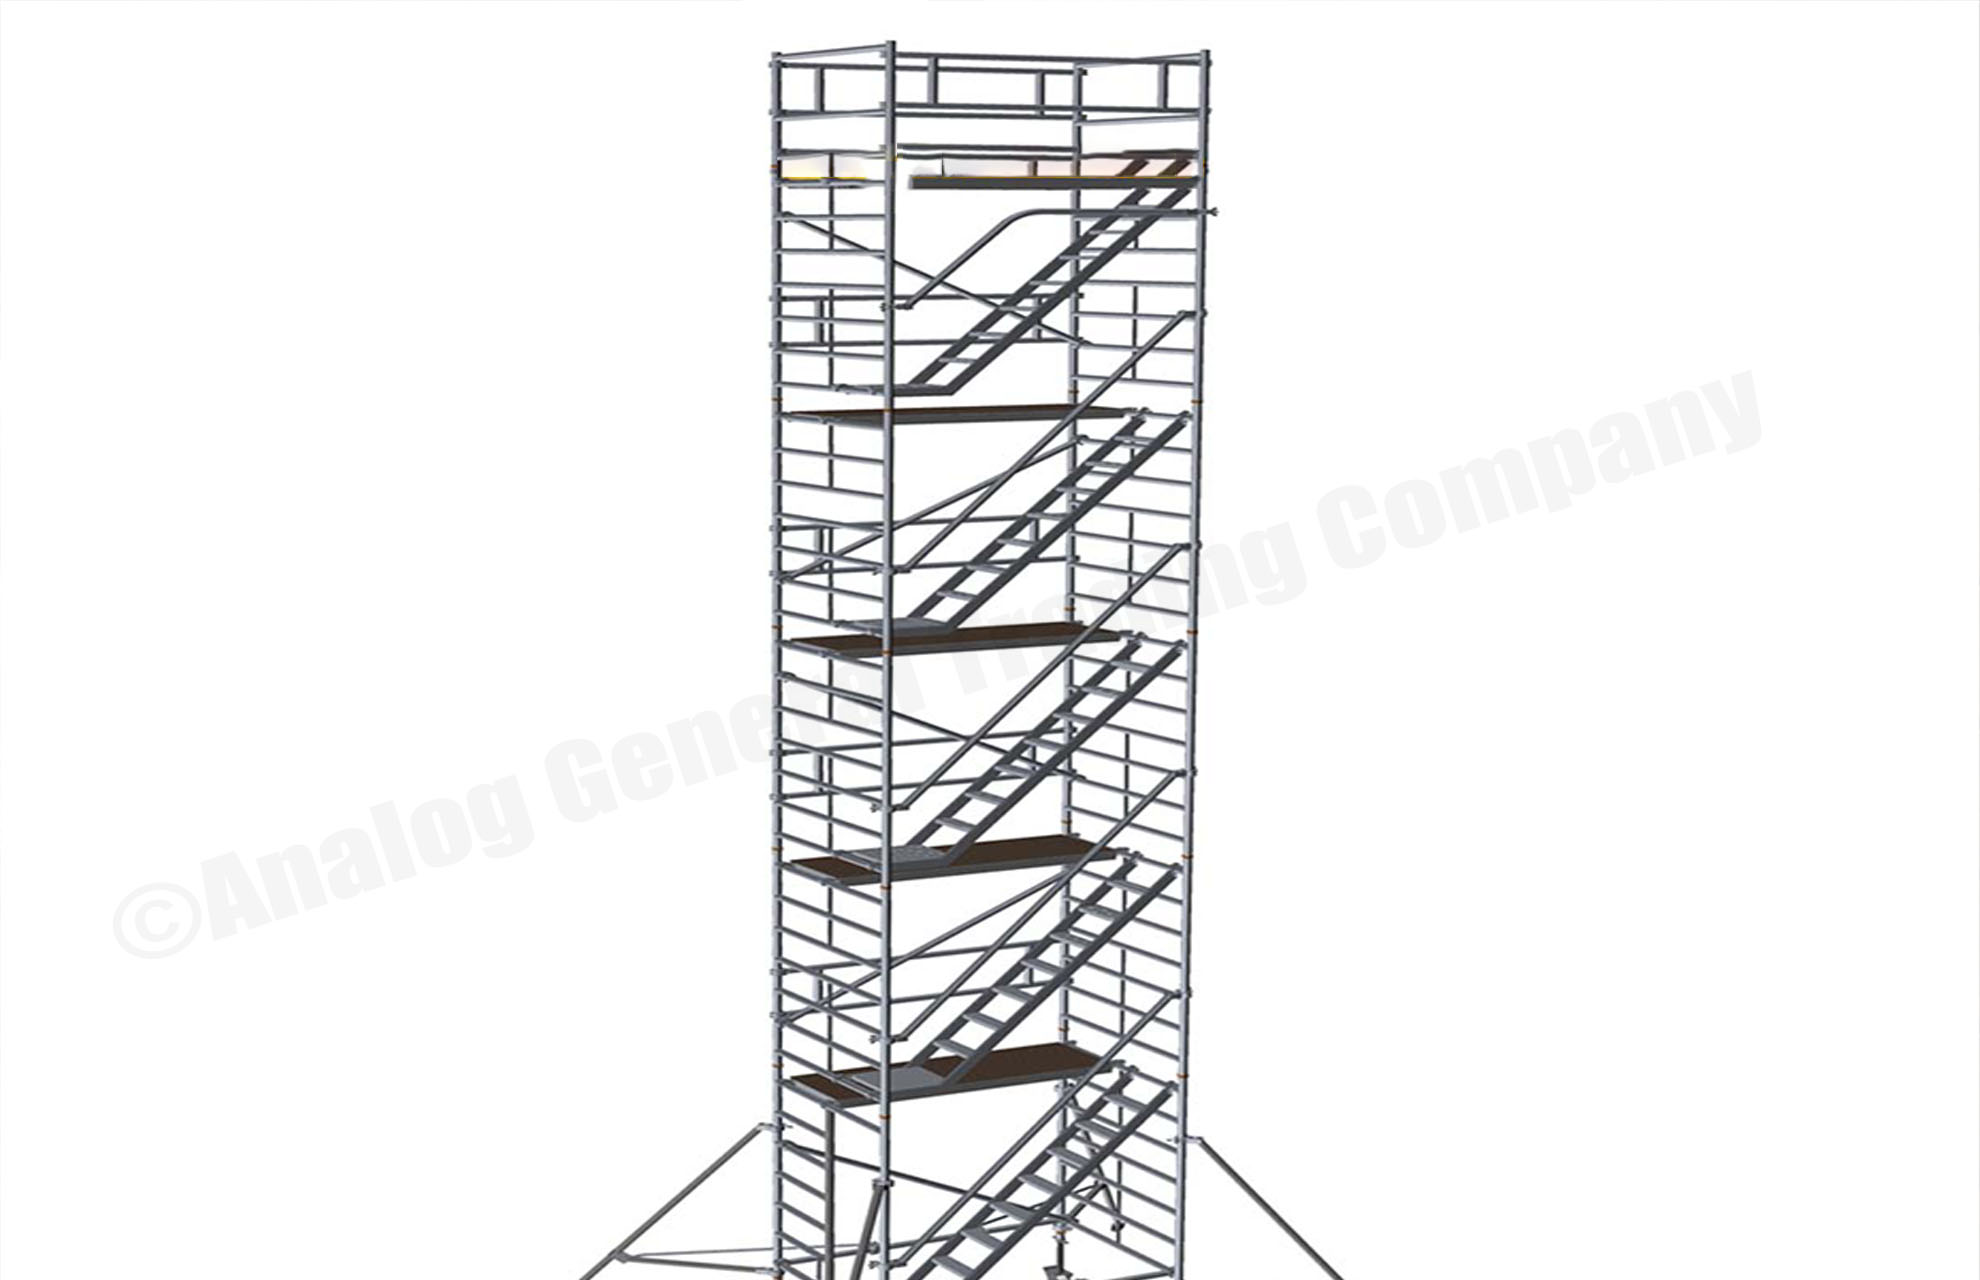 Foldable-Mobile-Tower